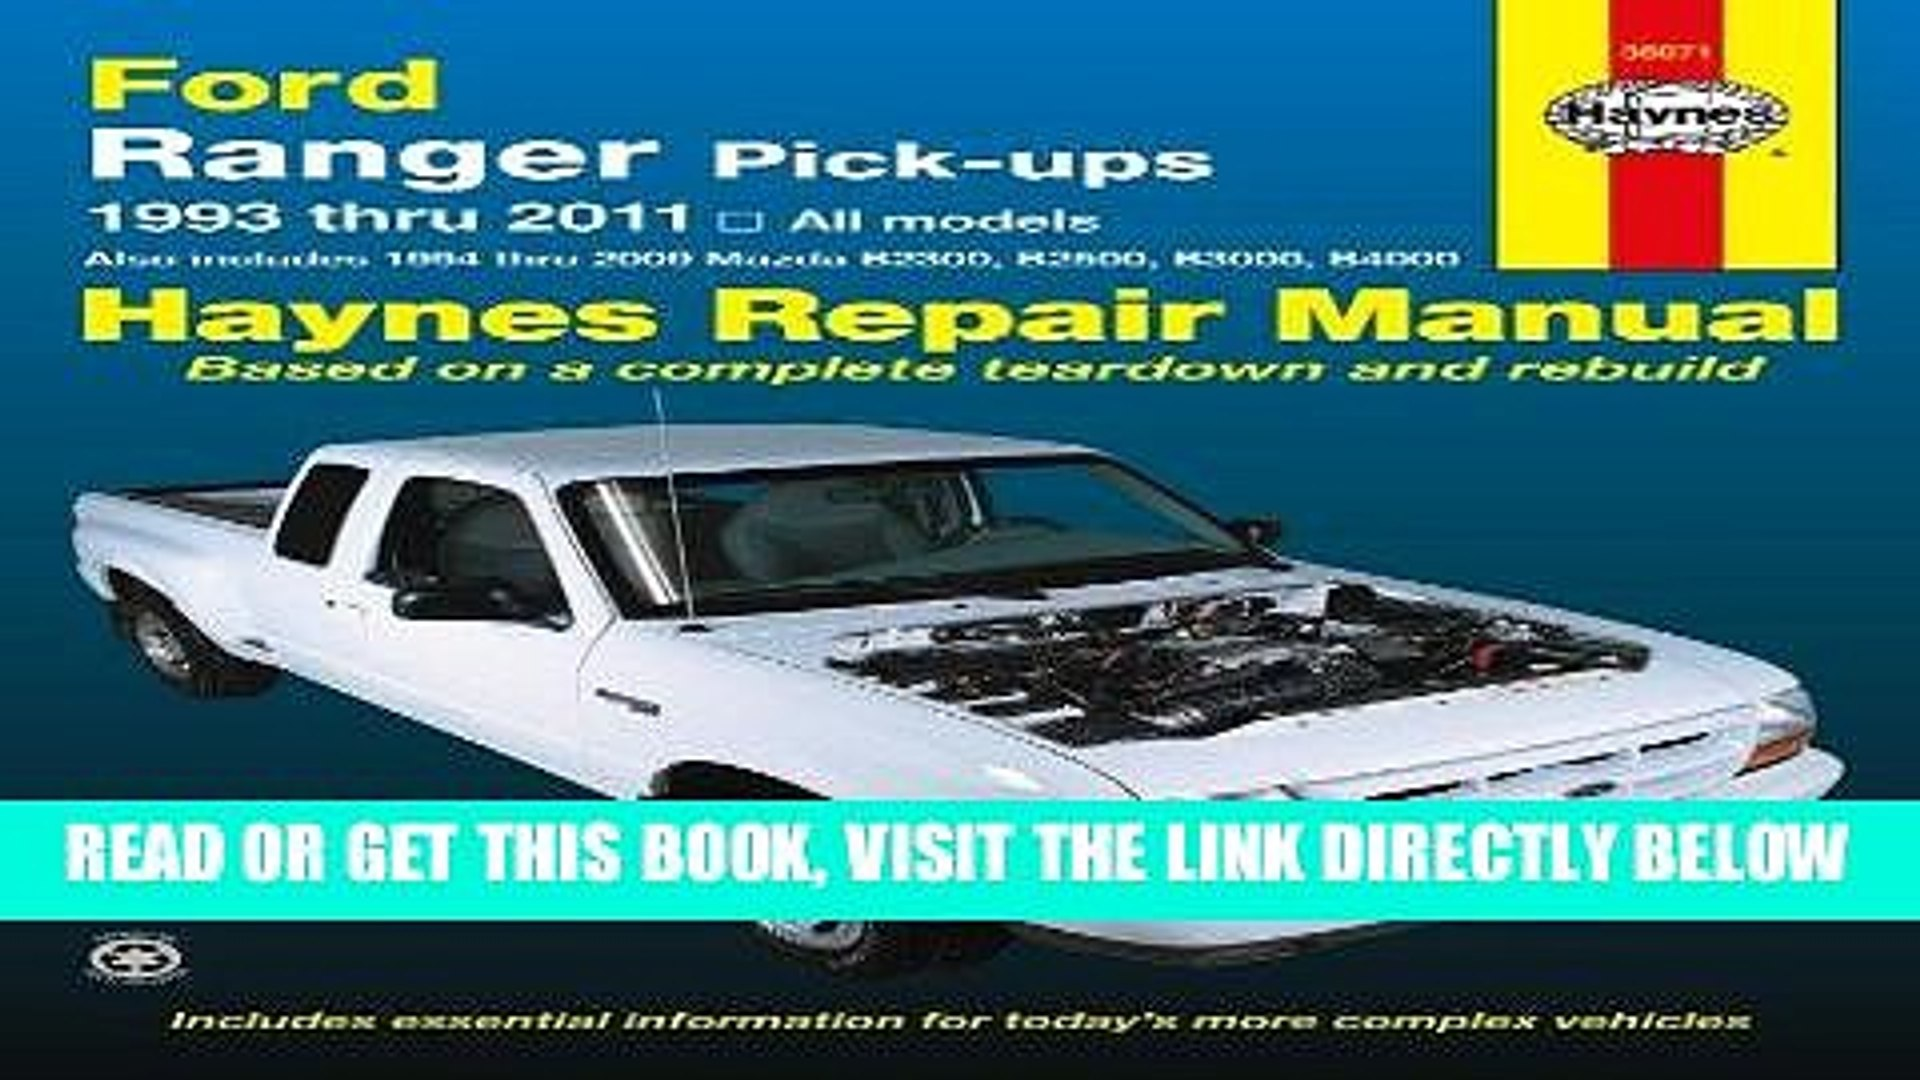 [Free Read] Ford Ranger Pick-ups 1993 thru 2011: 1993 thru 2011 all models - Also includes 1994